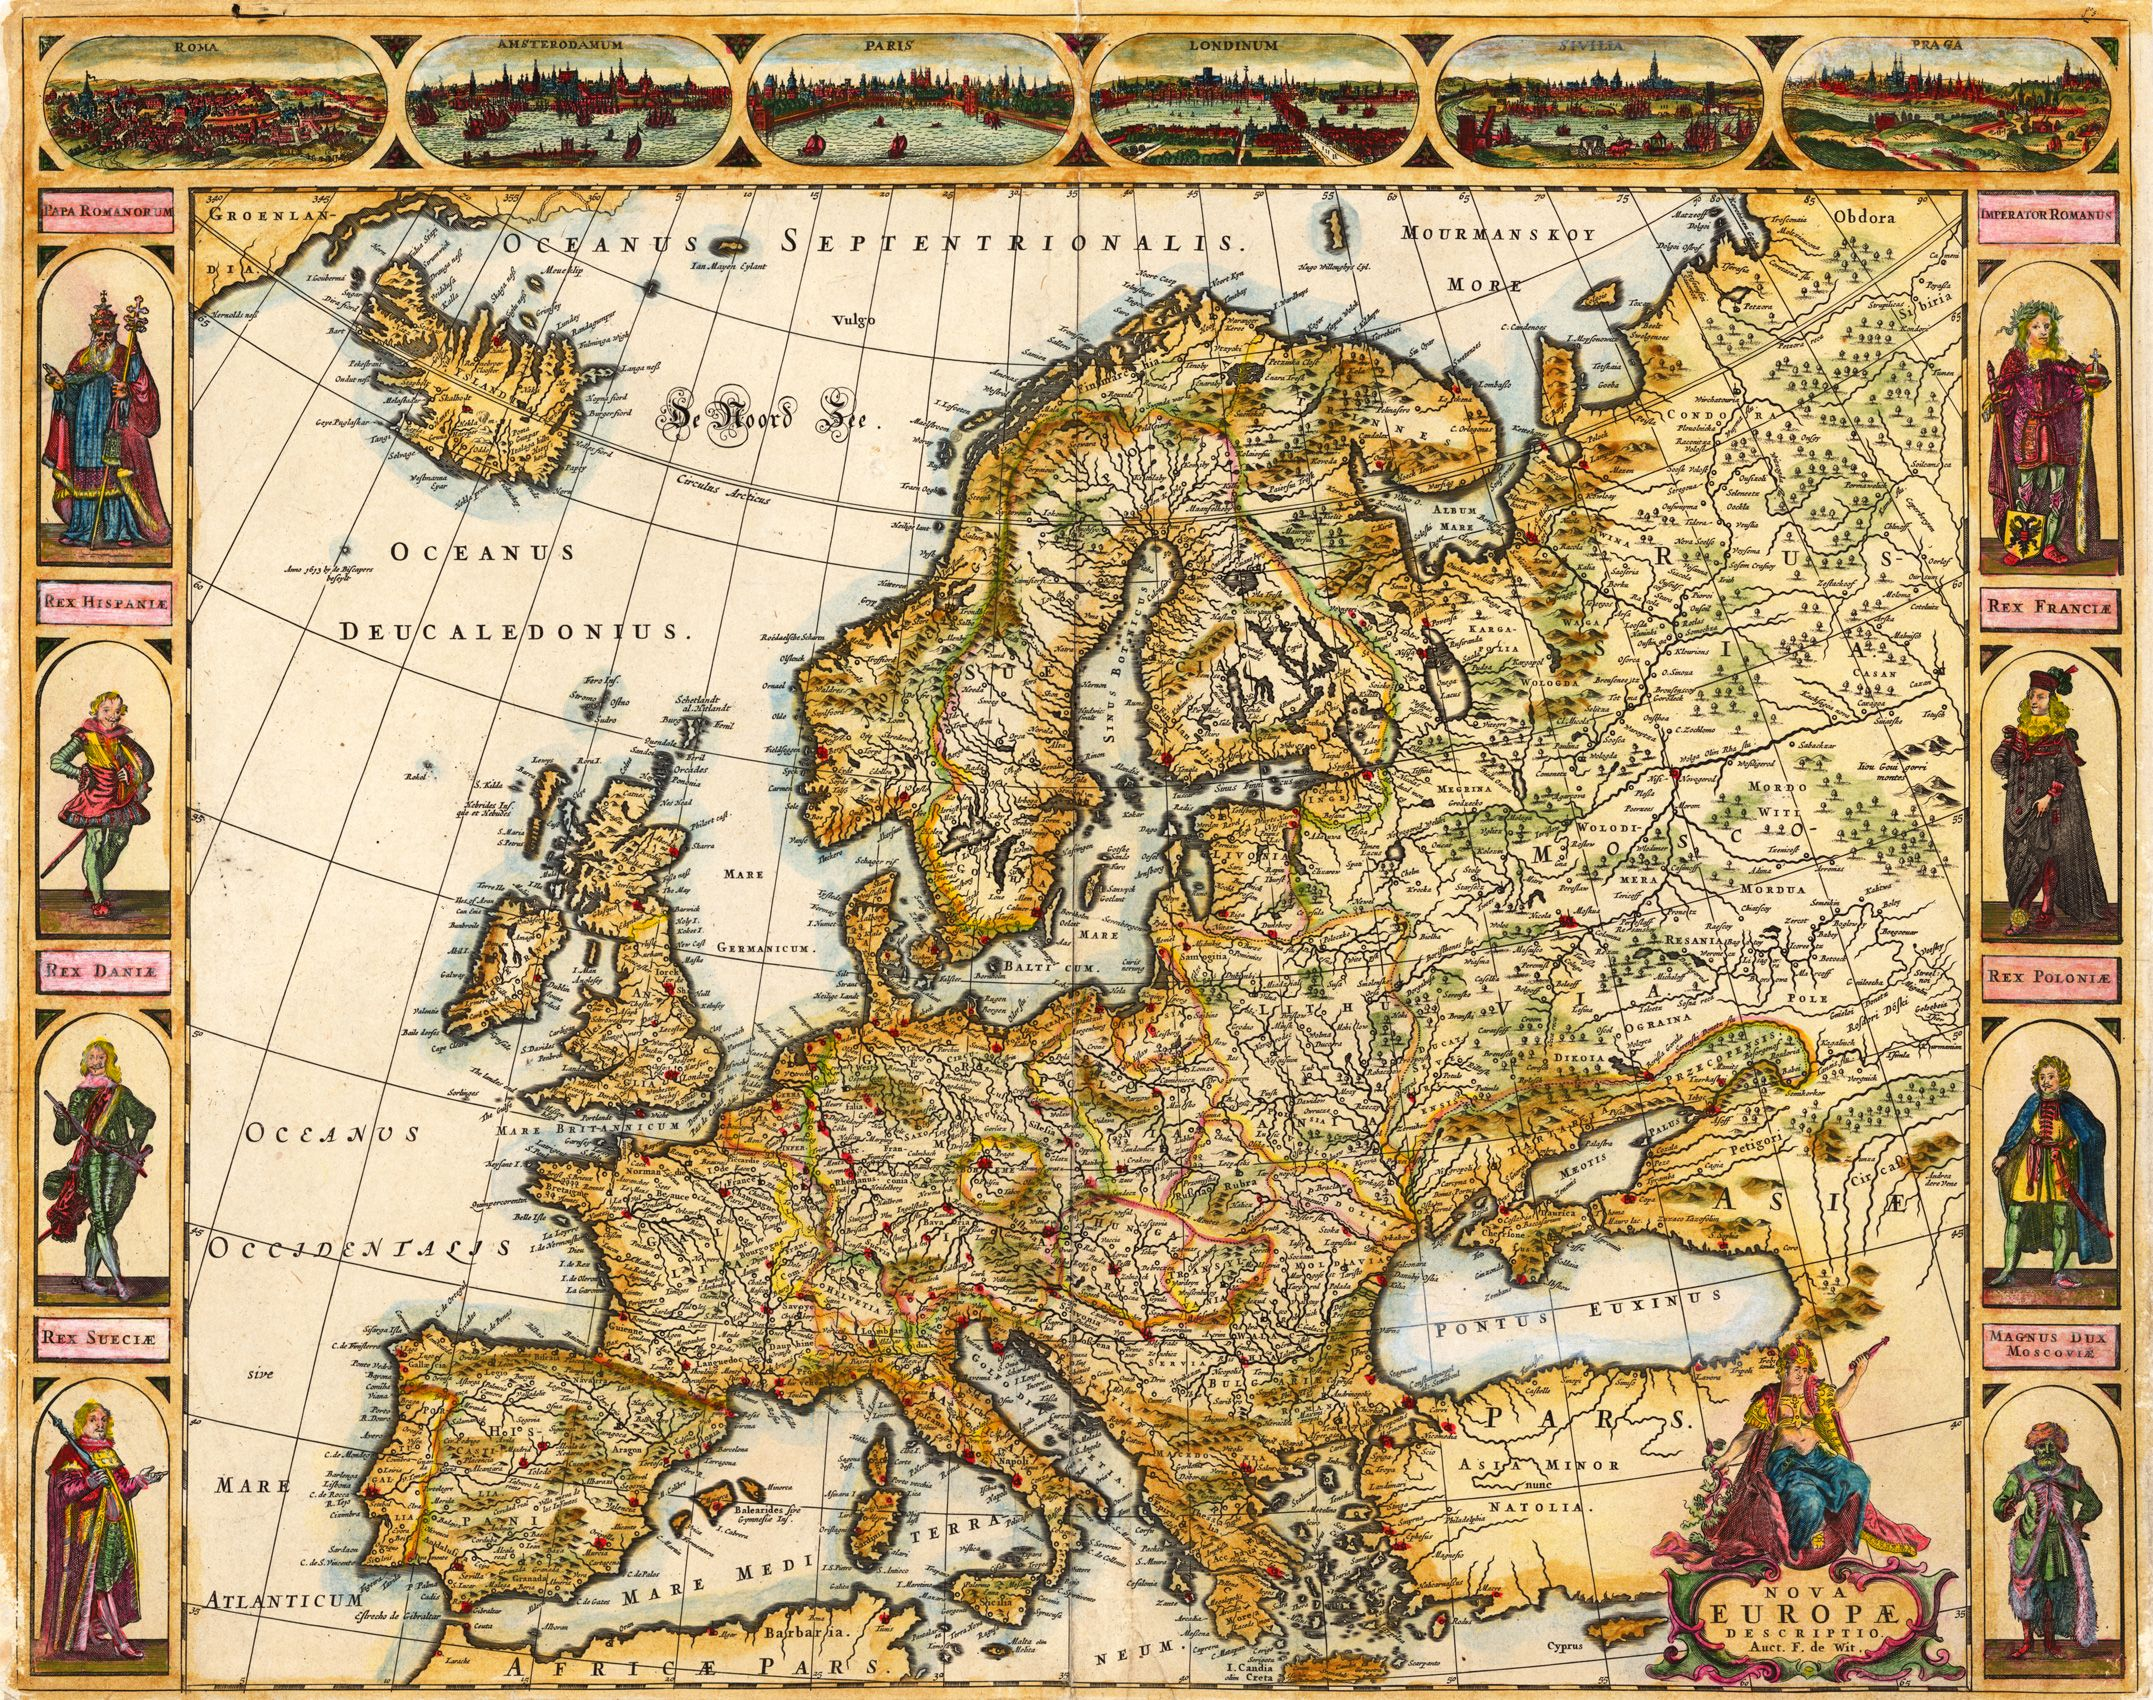 Antique map of Europe by Frederick de